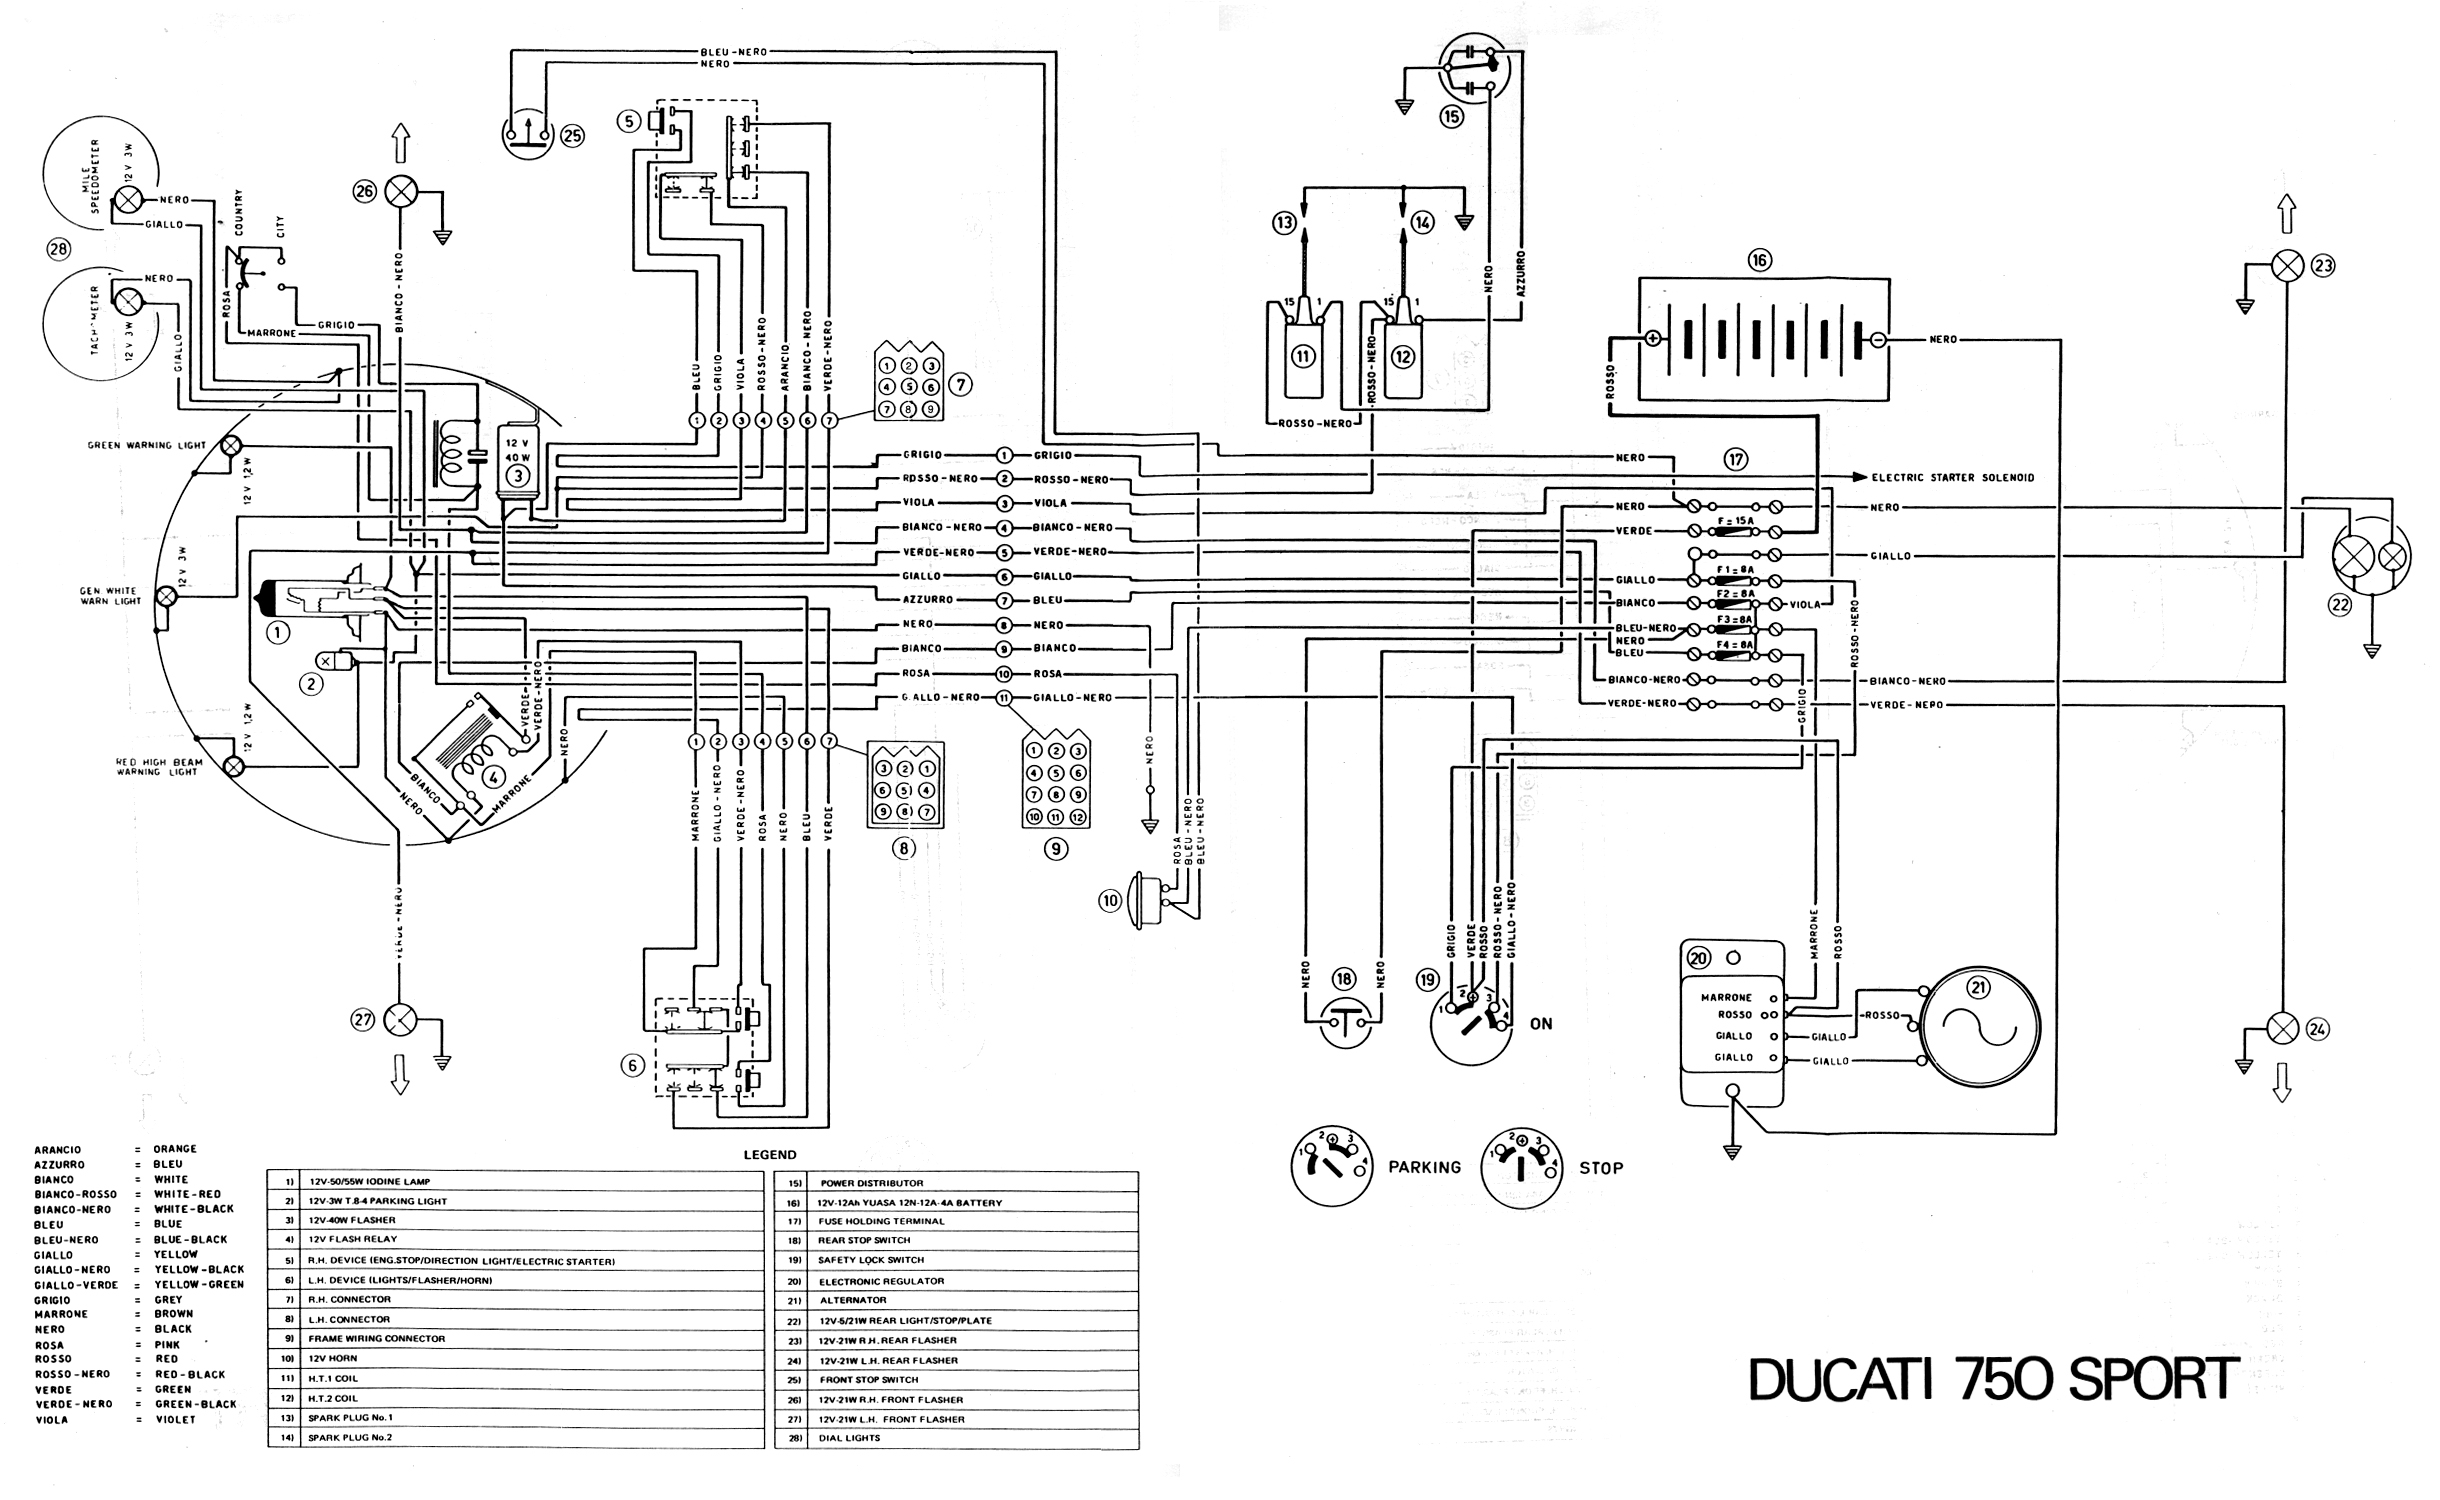 kubota b2320 wiring diagram kubota m6800 wiring diagram within kubota wiring and ...